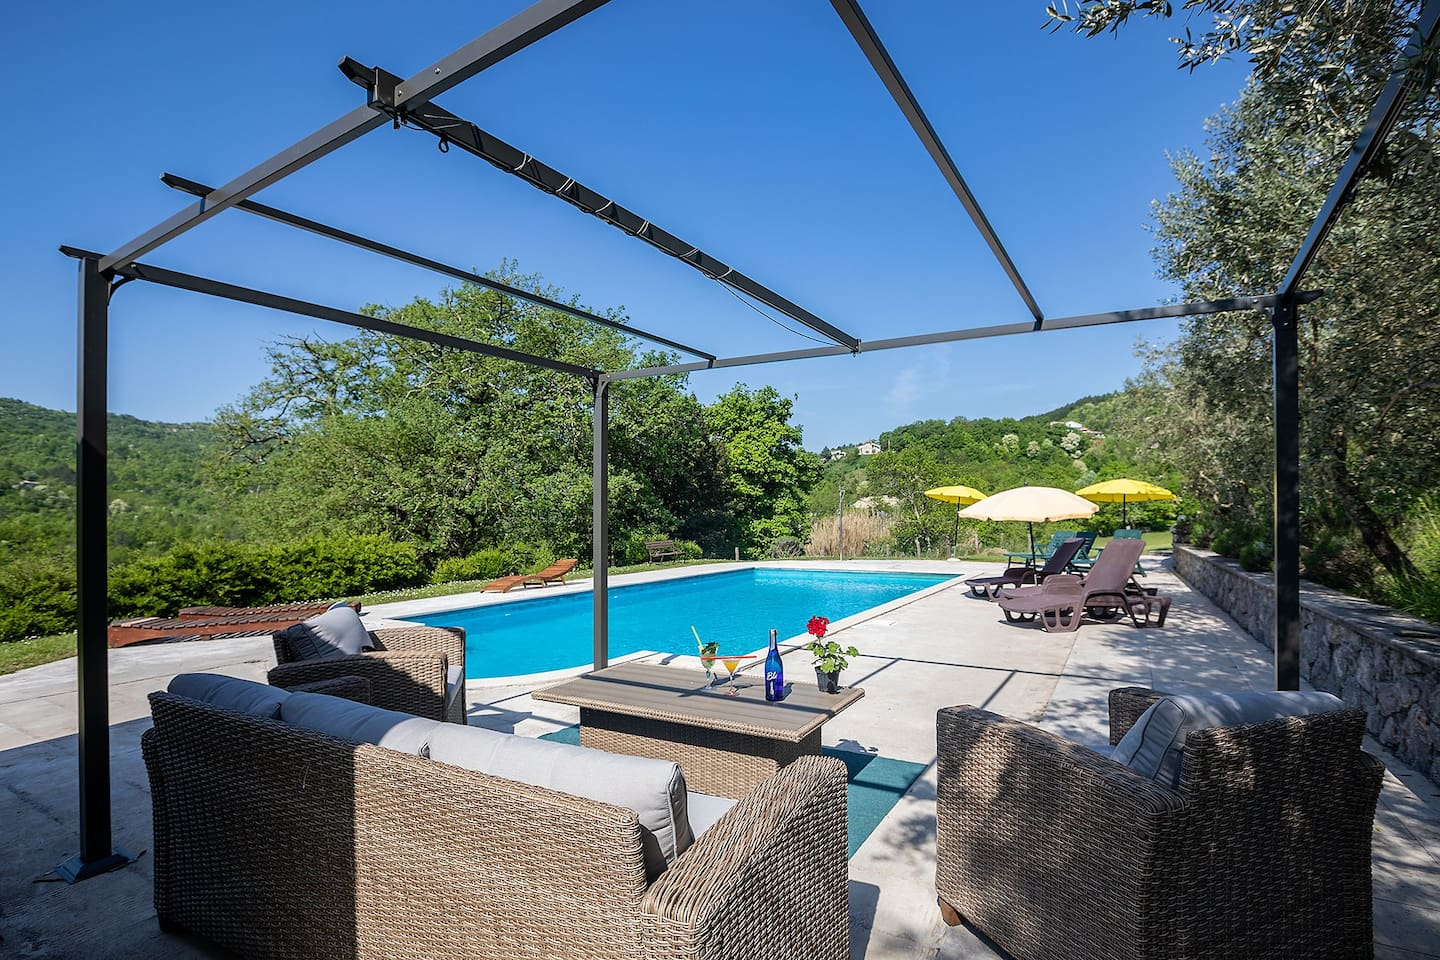 Shared large pool 5 x 10 meters